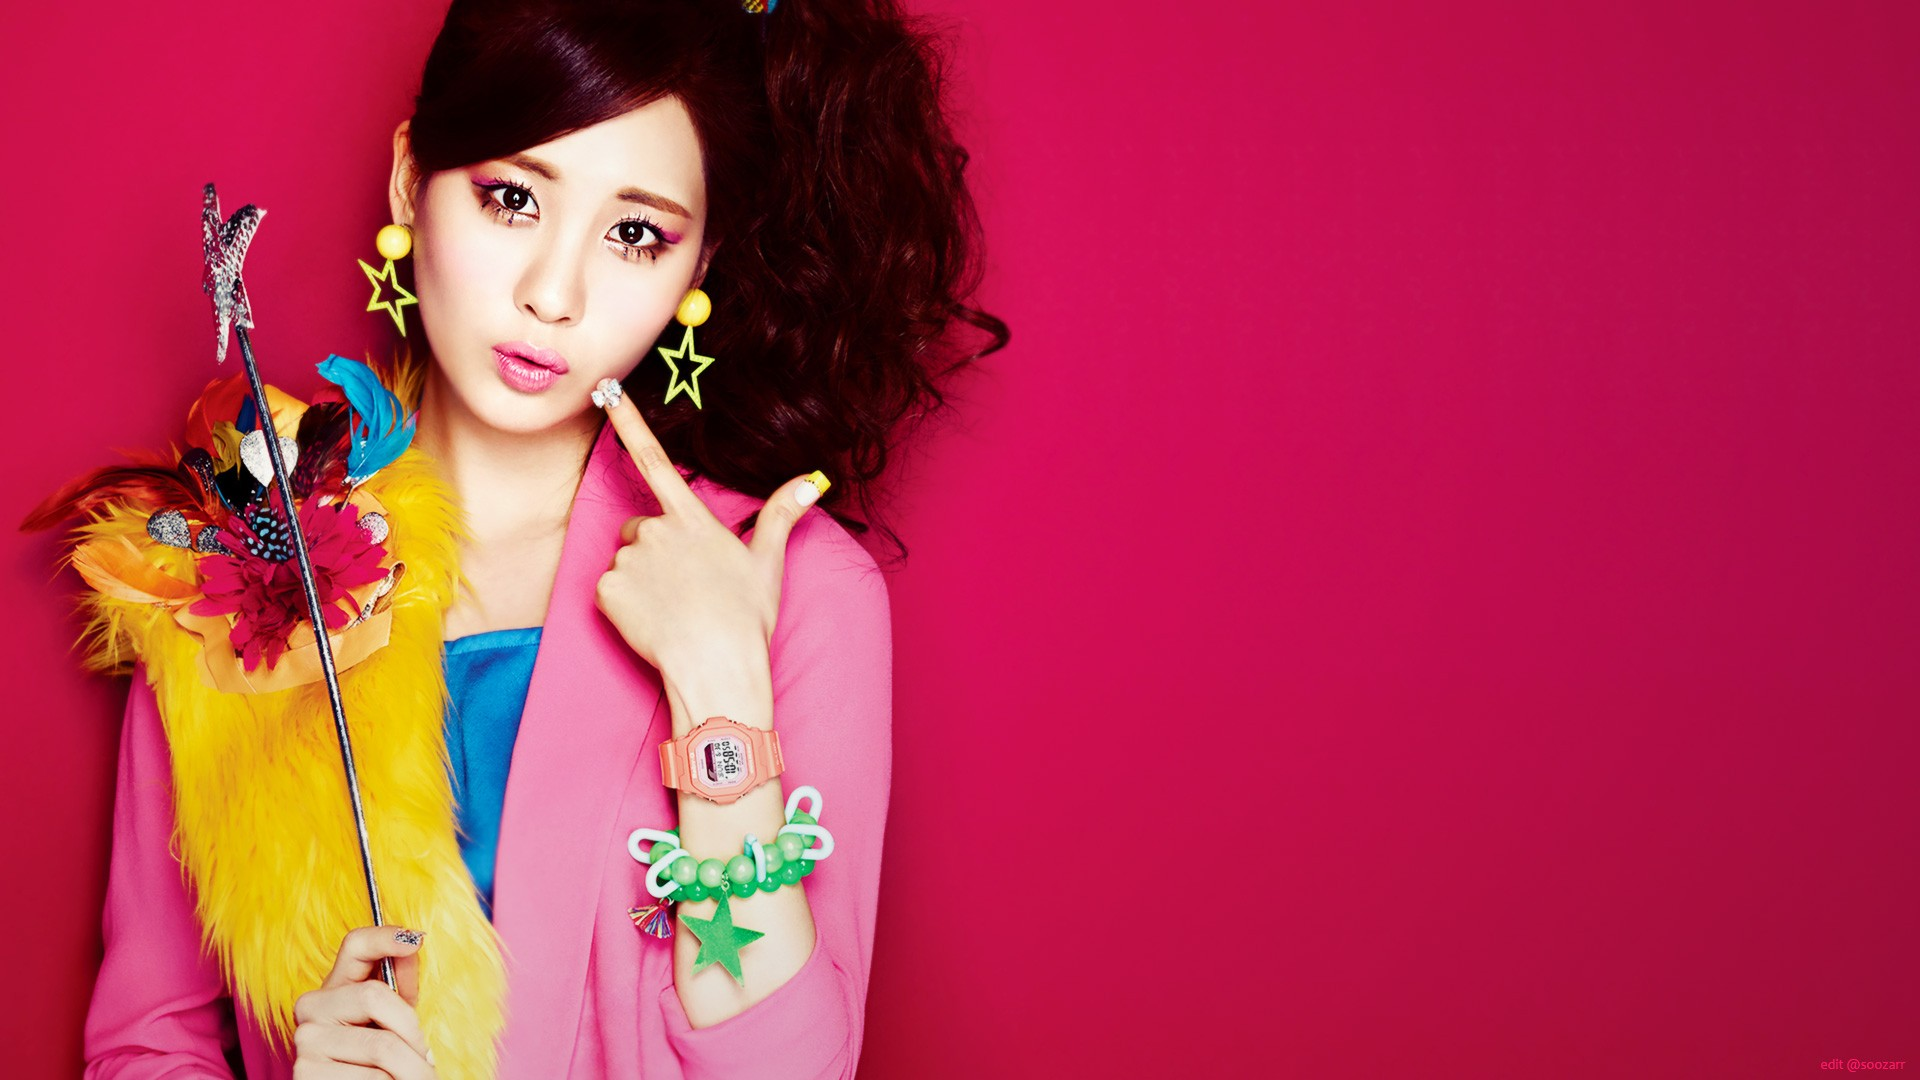 seohyun's habits drive other girls' generation members crazy | soompi